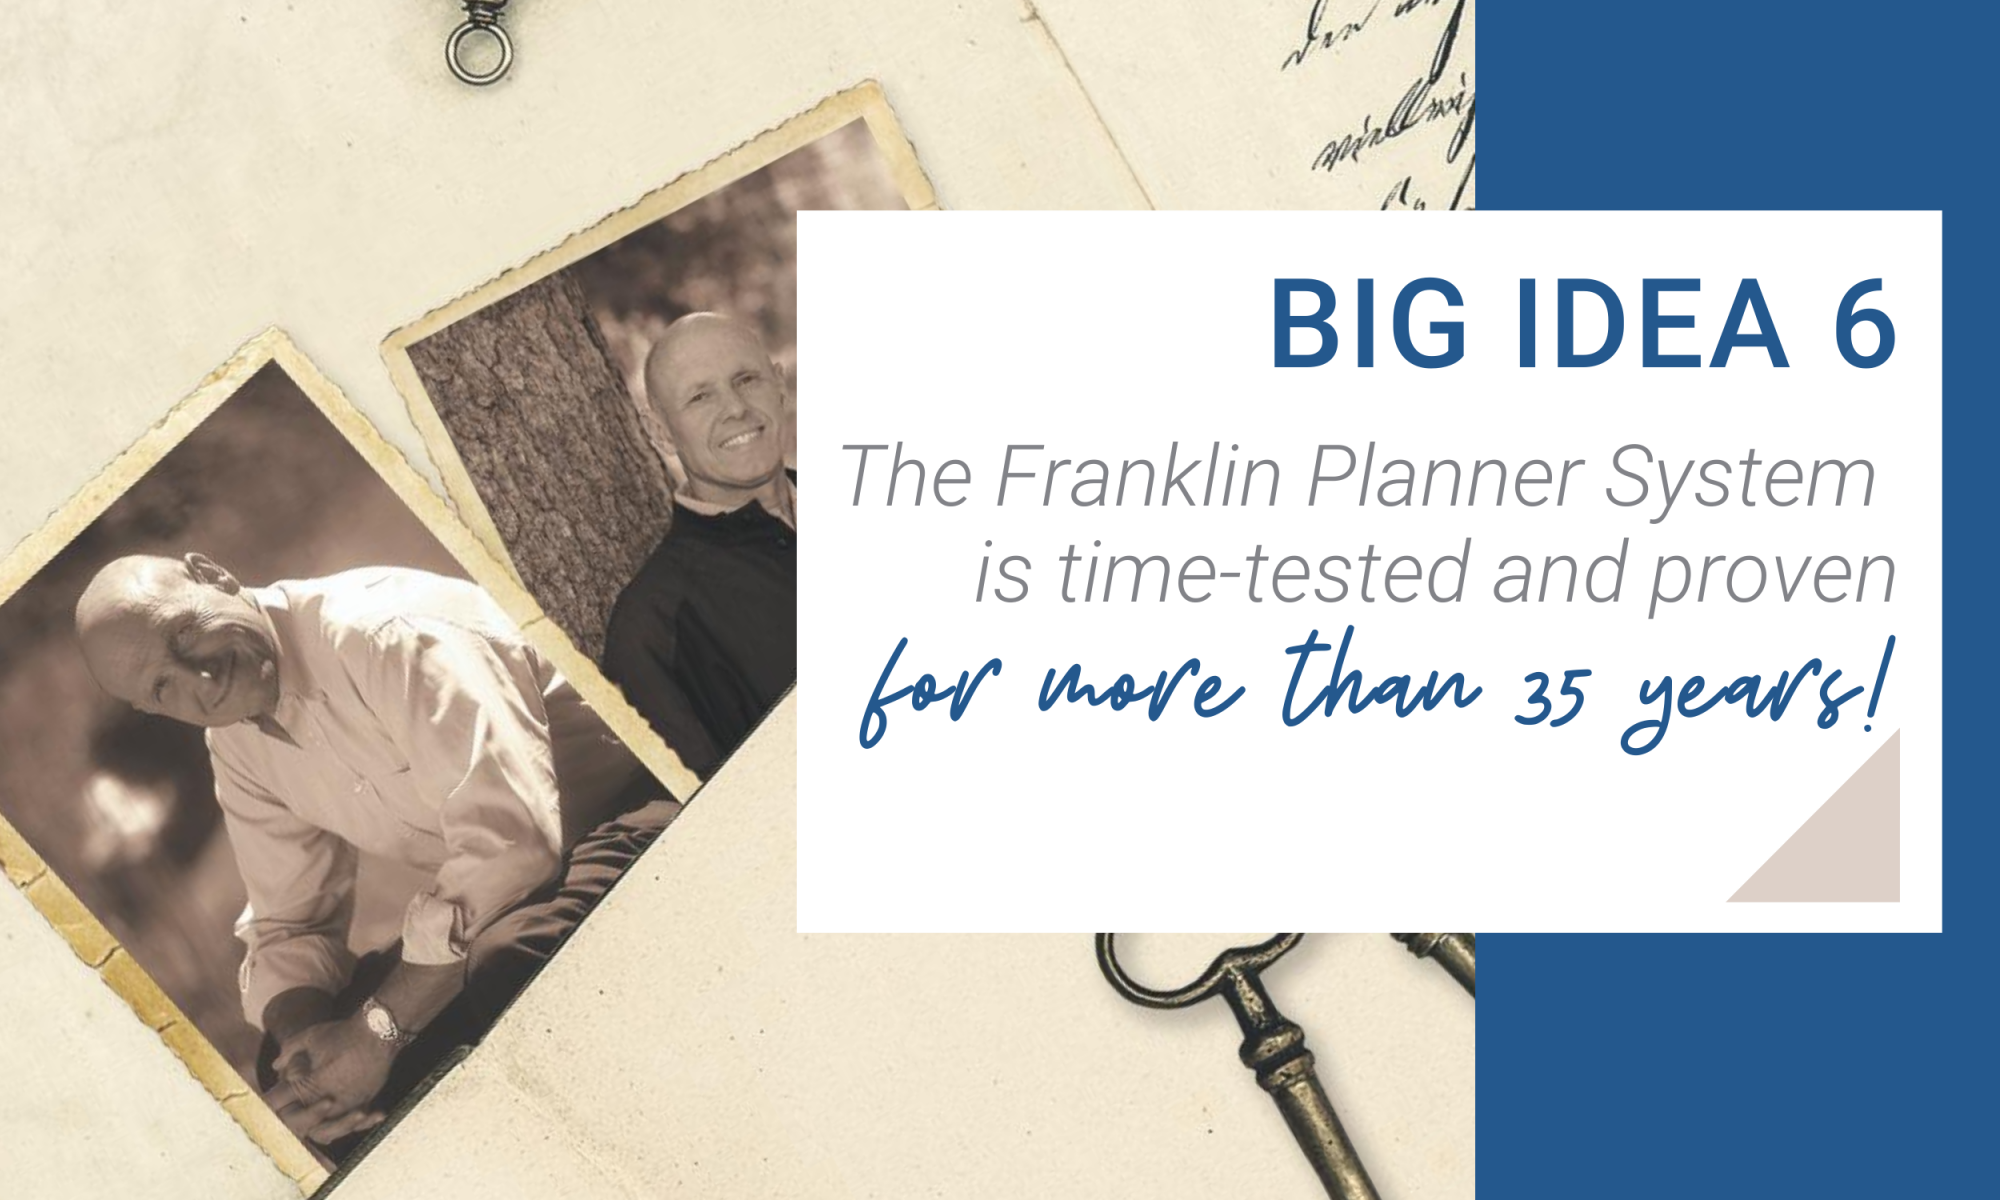 Big Idea 6. The Franklin Planner System if time-tested and proven for more than 35 years!